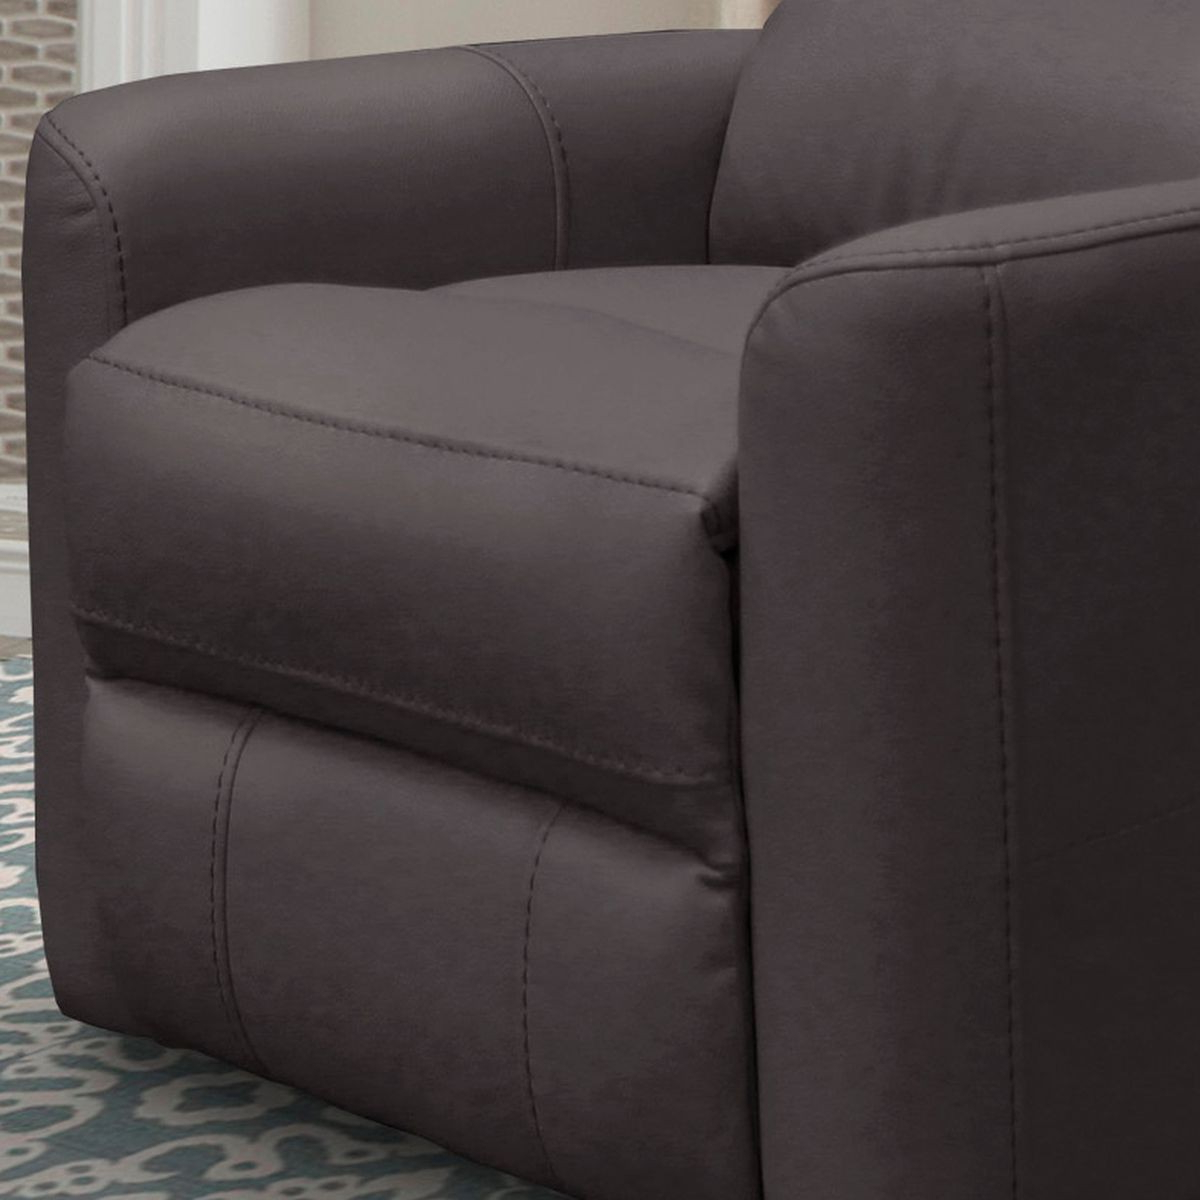 Most Popular Hercules Chocolate Swivel Glider Recliners Within Parker Living Hercules Anywhere Power Swivel Recliner In Chocolate (View 16 of 20)